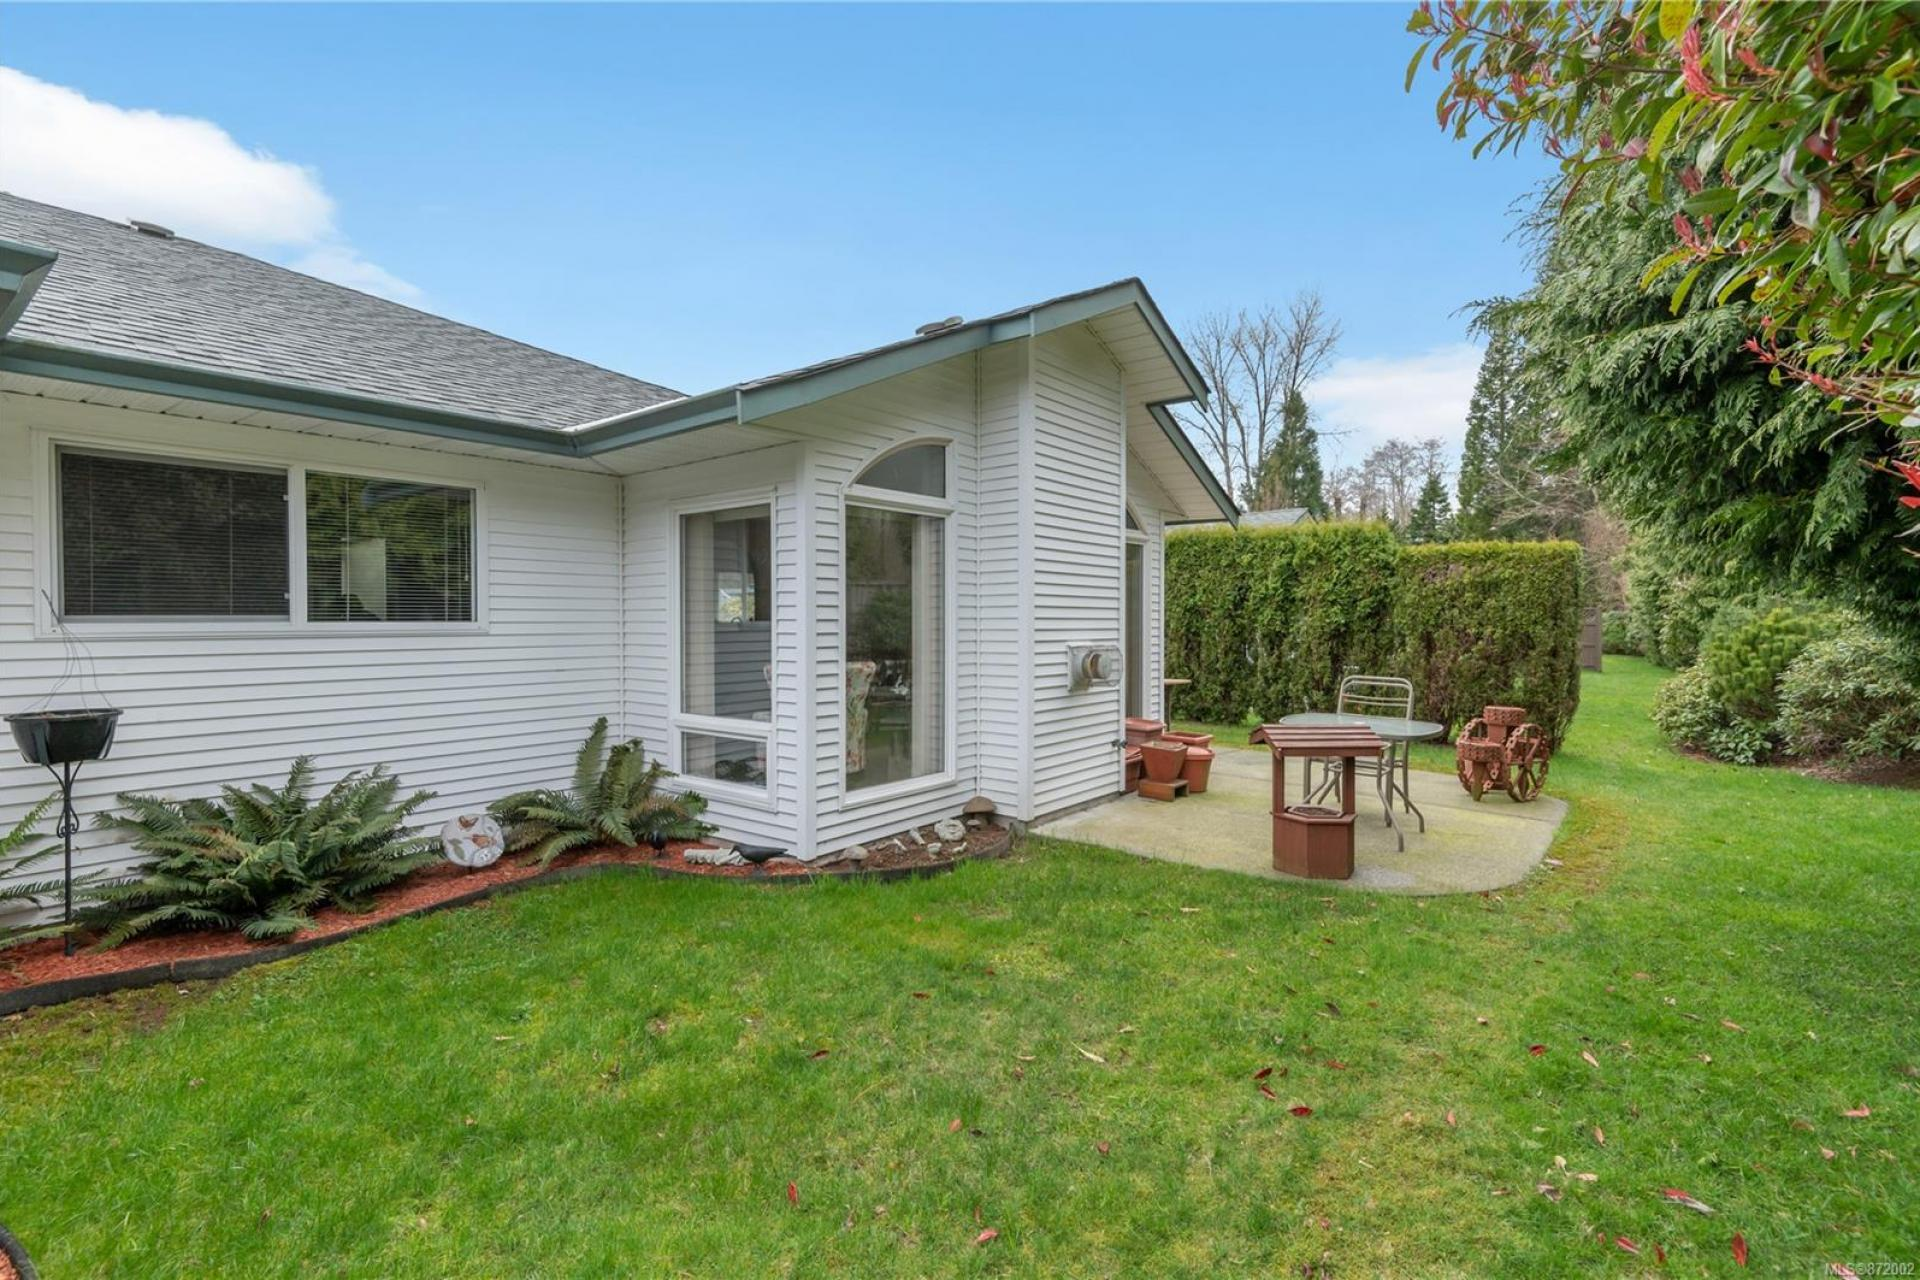 13 - 396 Harrogate Road, Campbell River